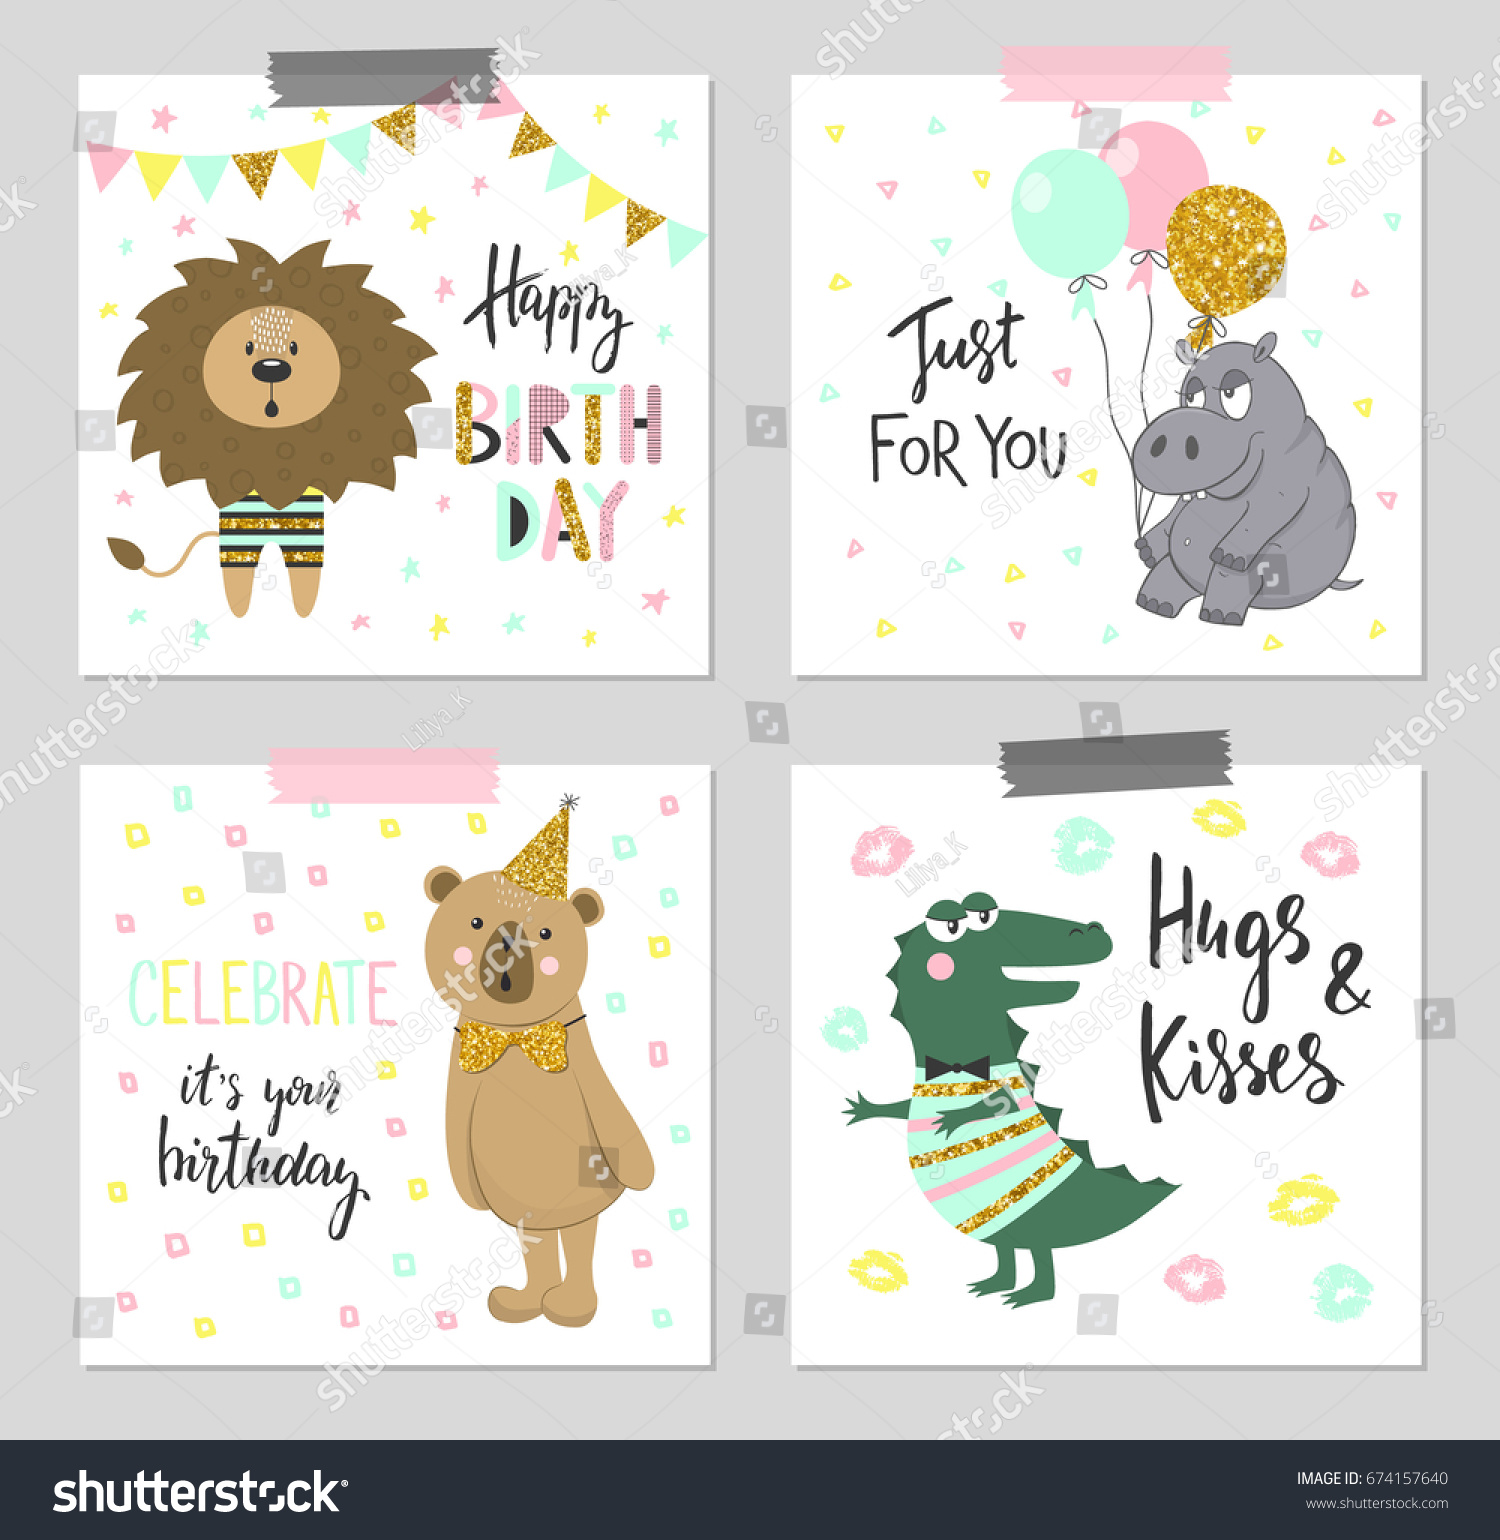 Happy Birthday Greeting Cards Party Invitation Stock Vector ...